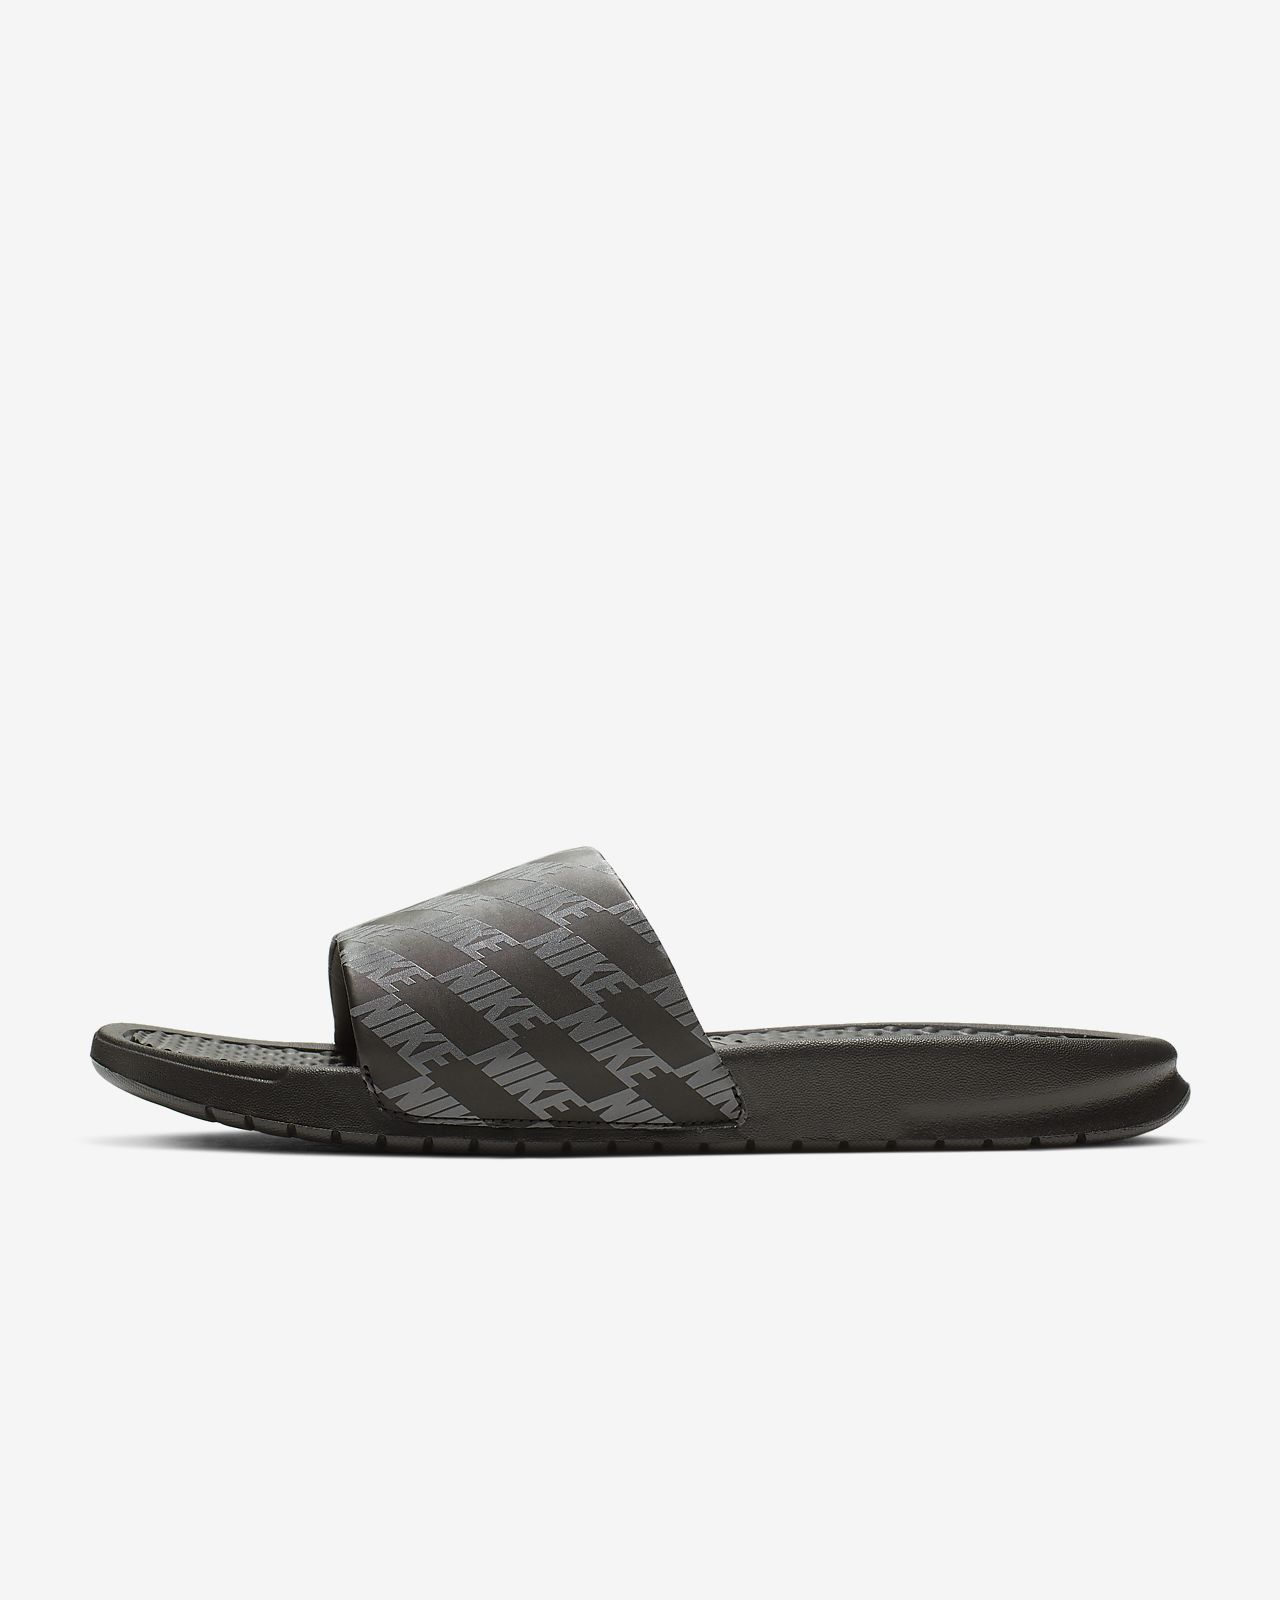 b7c58eba972c Low Resolution Nike Benassi Men s Slide Nike Benassi Men s Slide